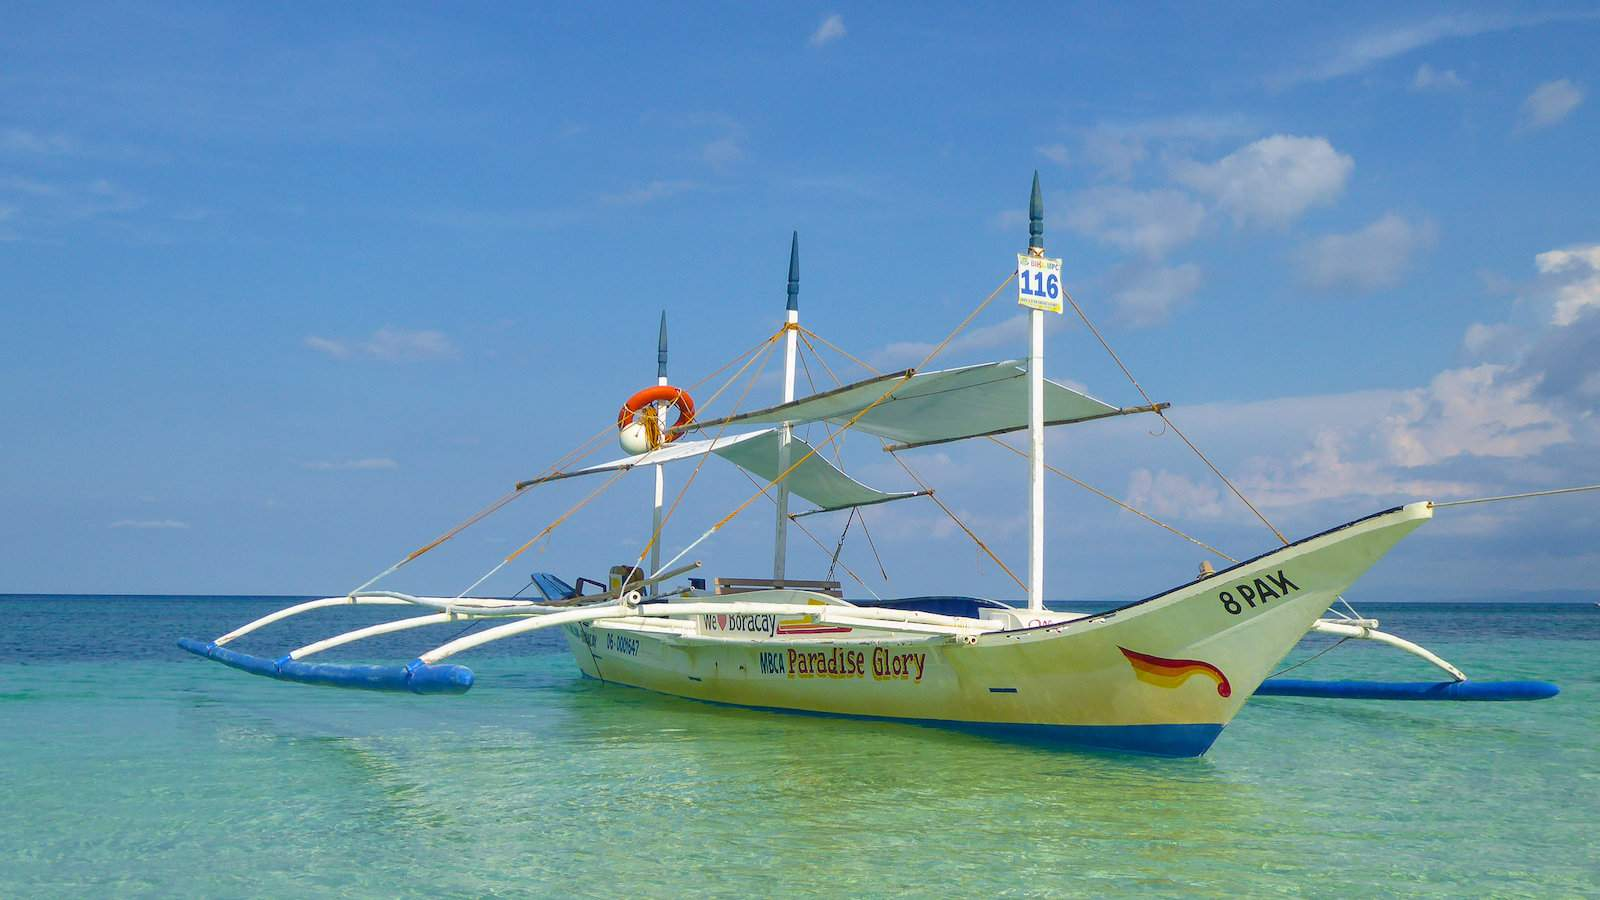 Bangka boats are an ubiquitous sight in the Philippines